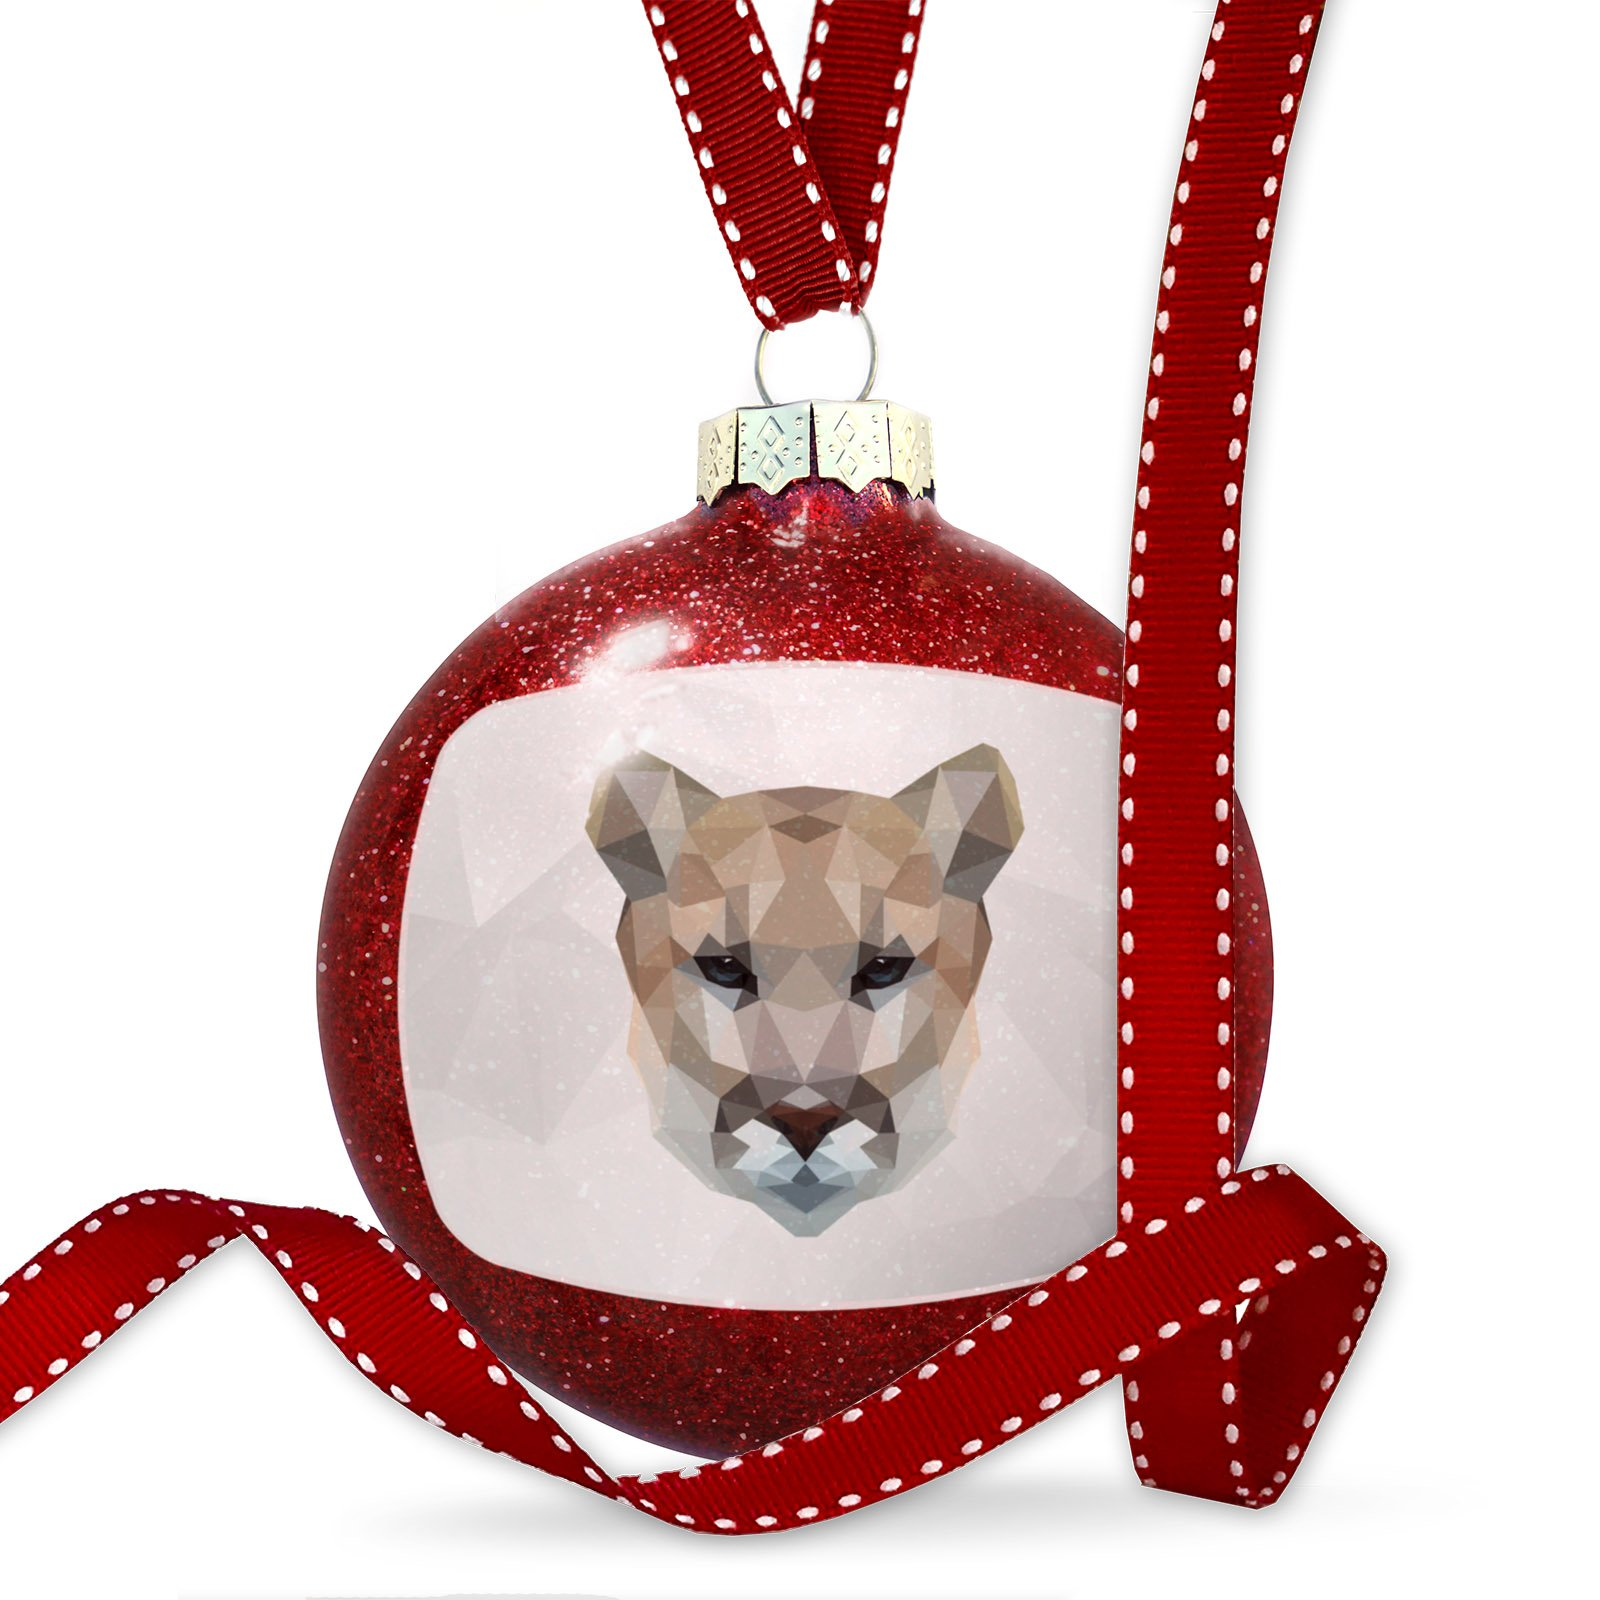 Christmas Decoration Low Poly zoo Animals Cougar Ornament